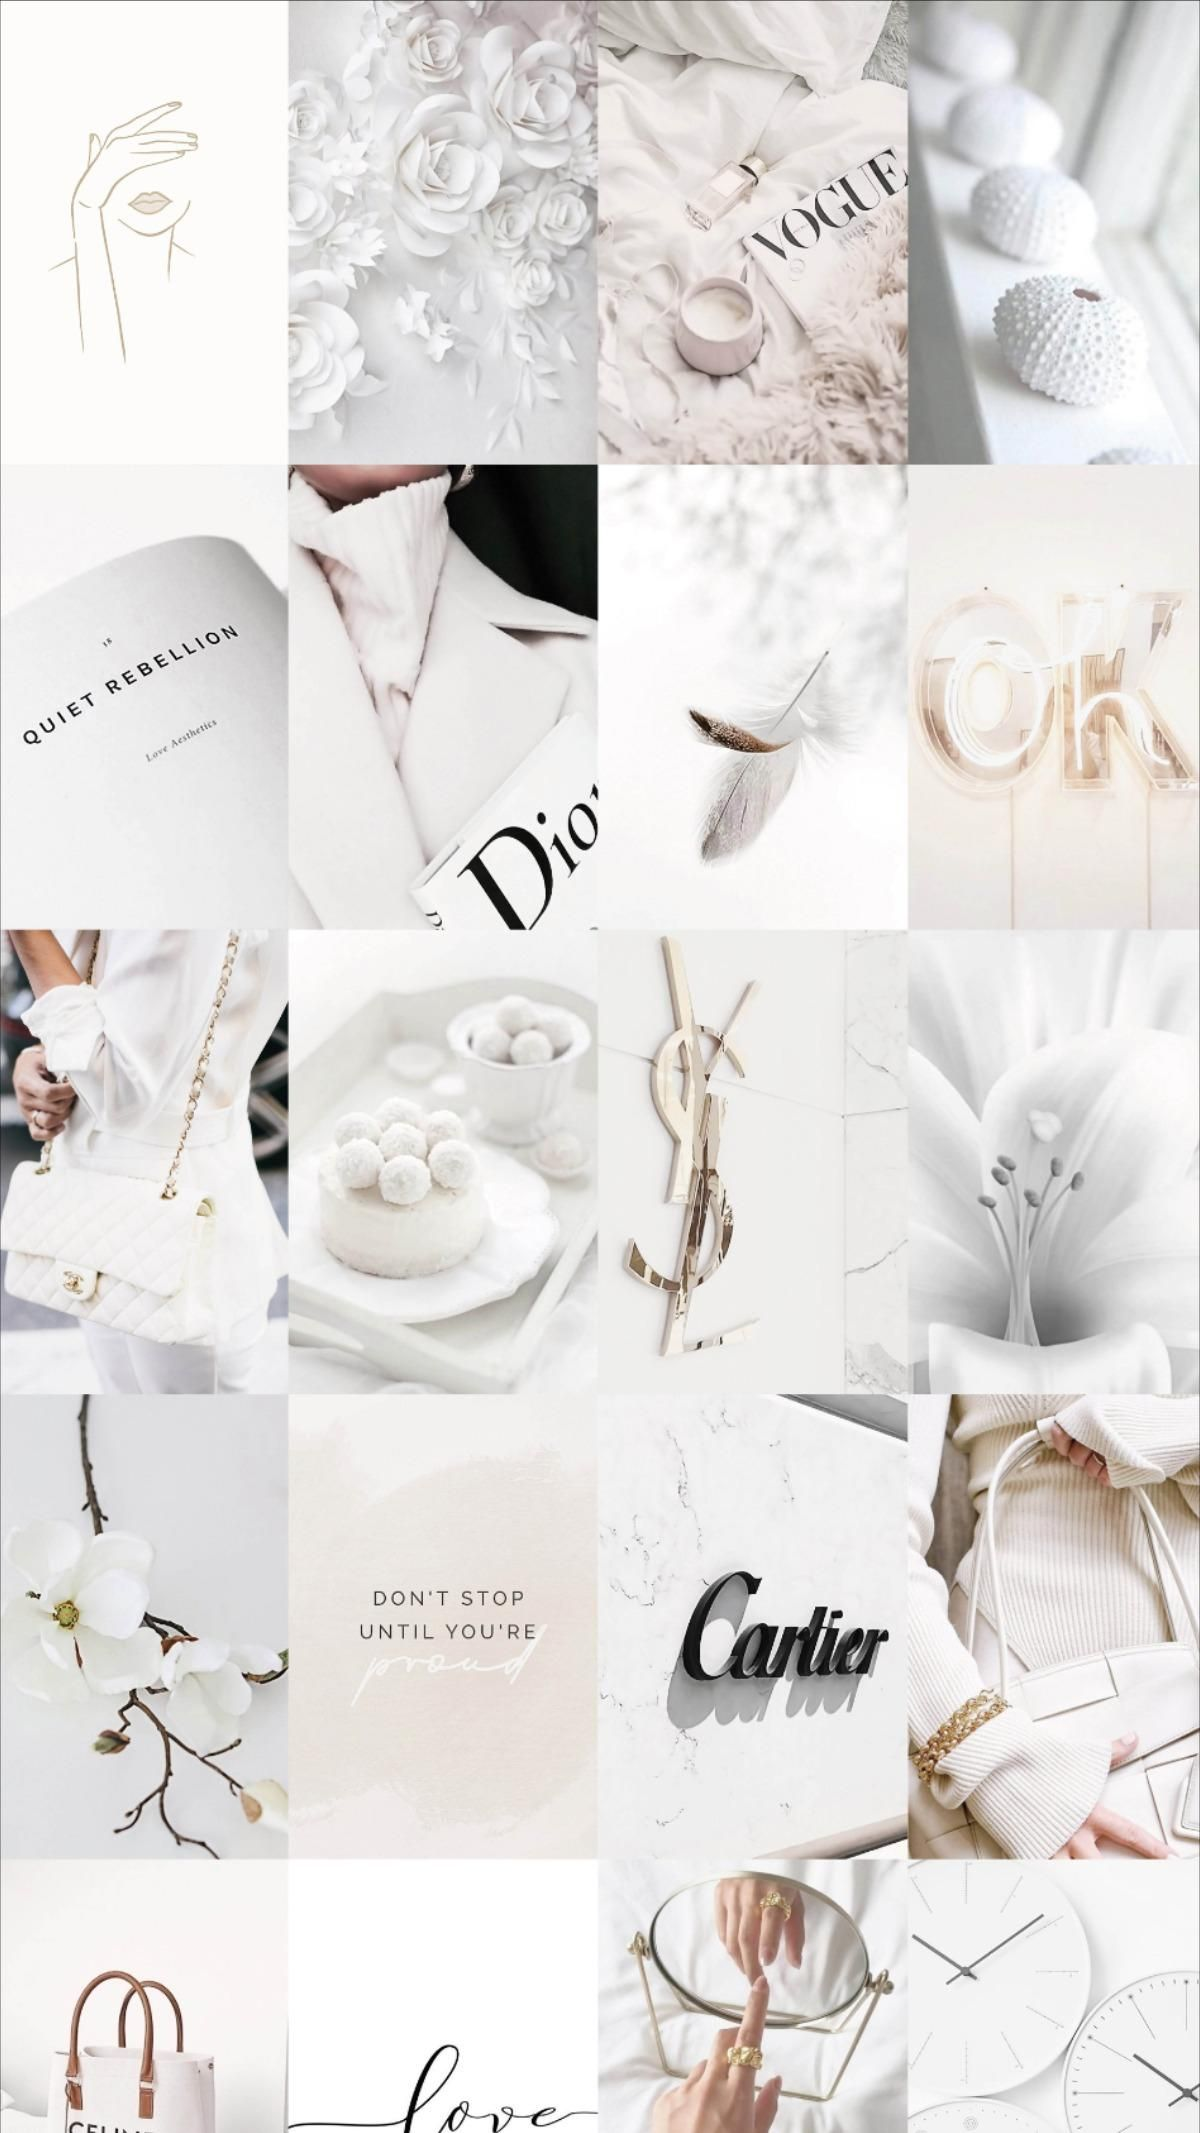 White Aesthetic Room Decor - Minimalist Positive Vibes Photo Wall Collage it